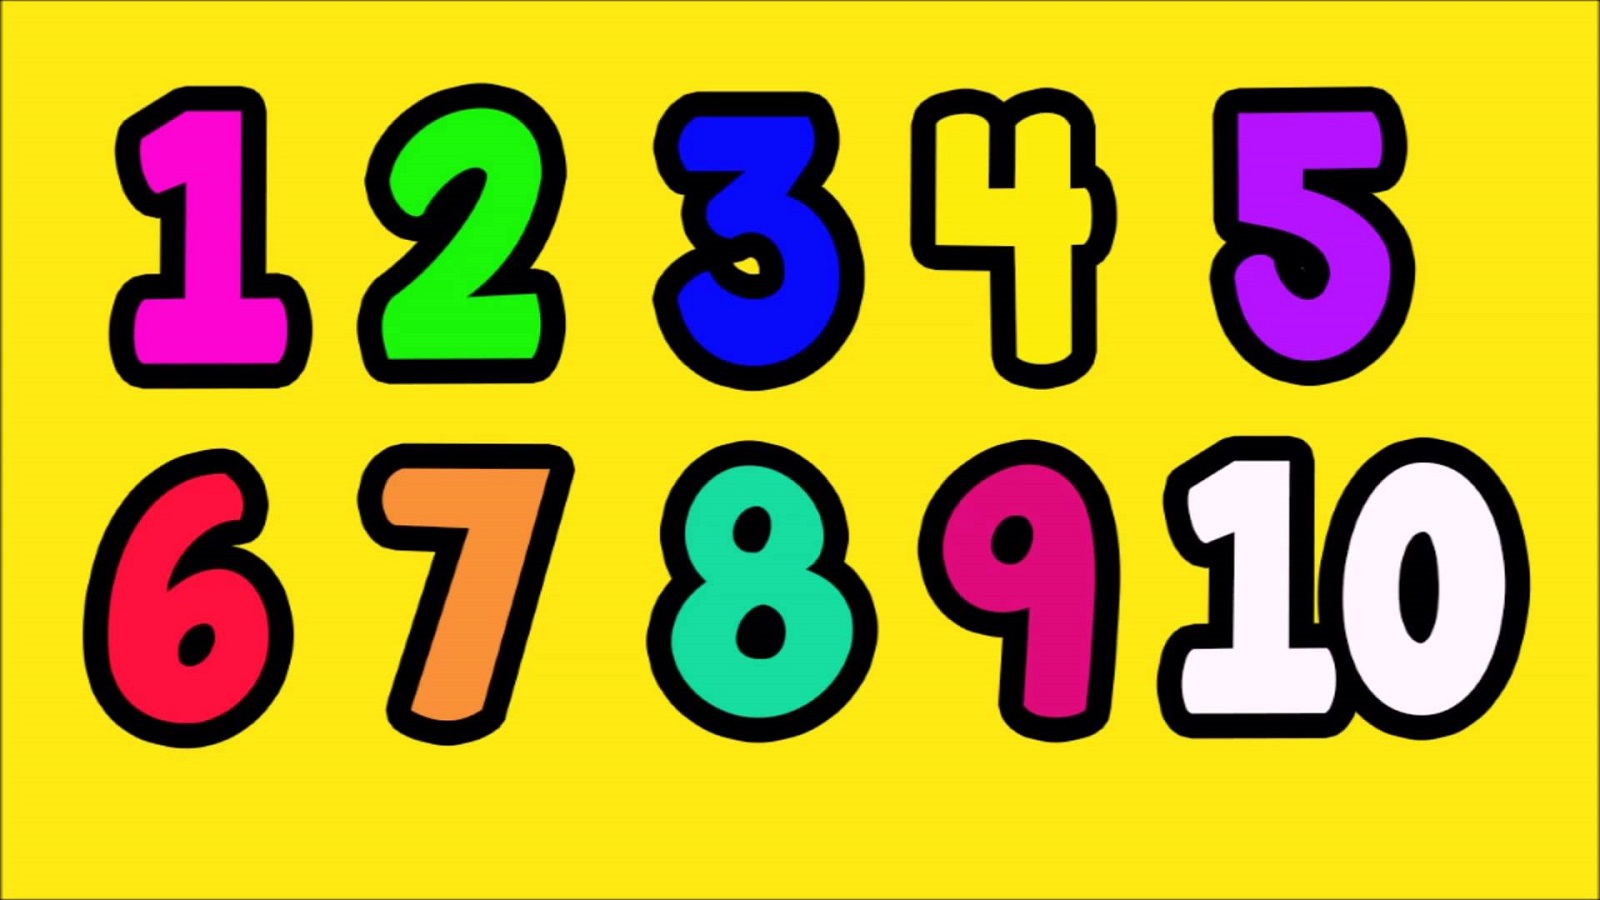 pictures-of-numbers-1-10-yellow